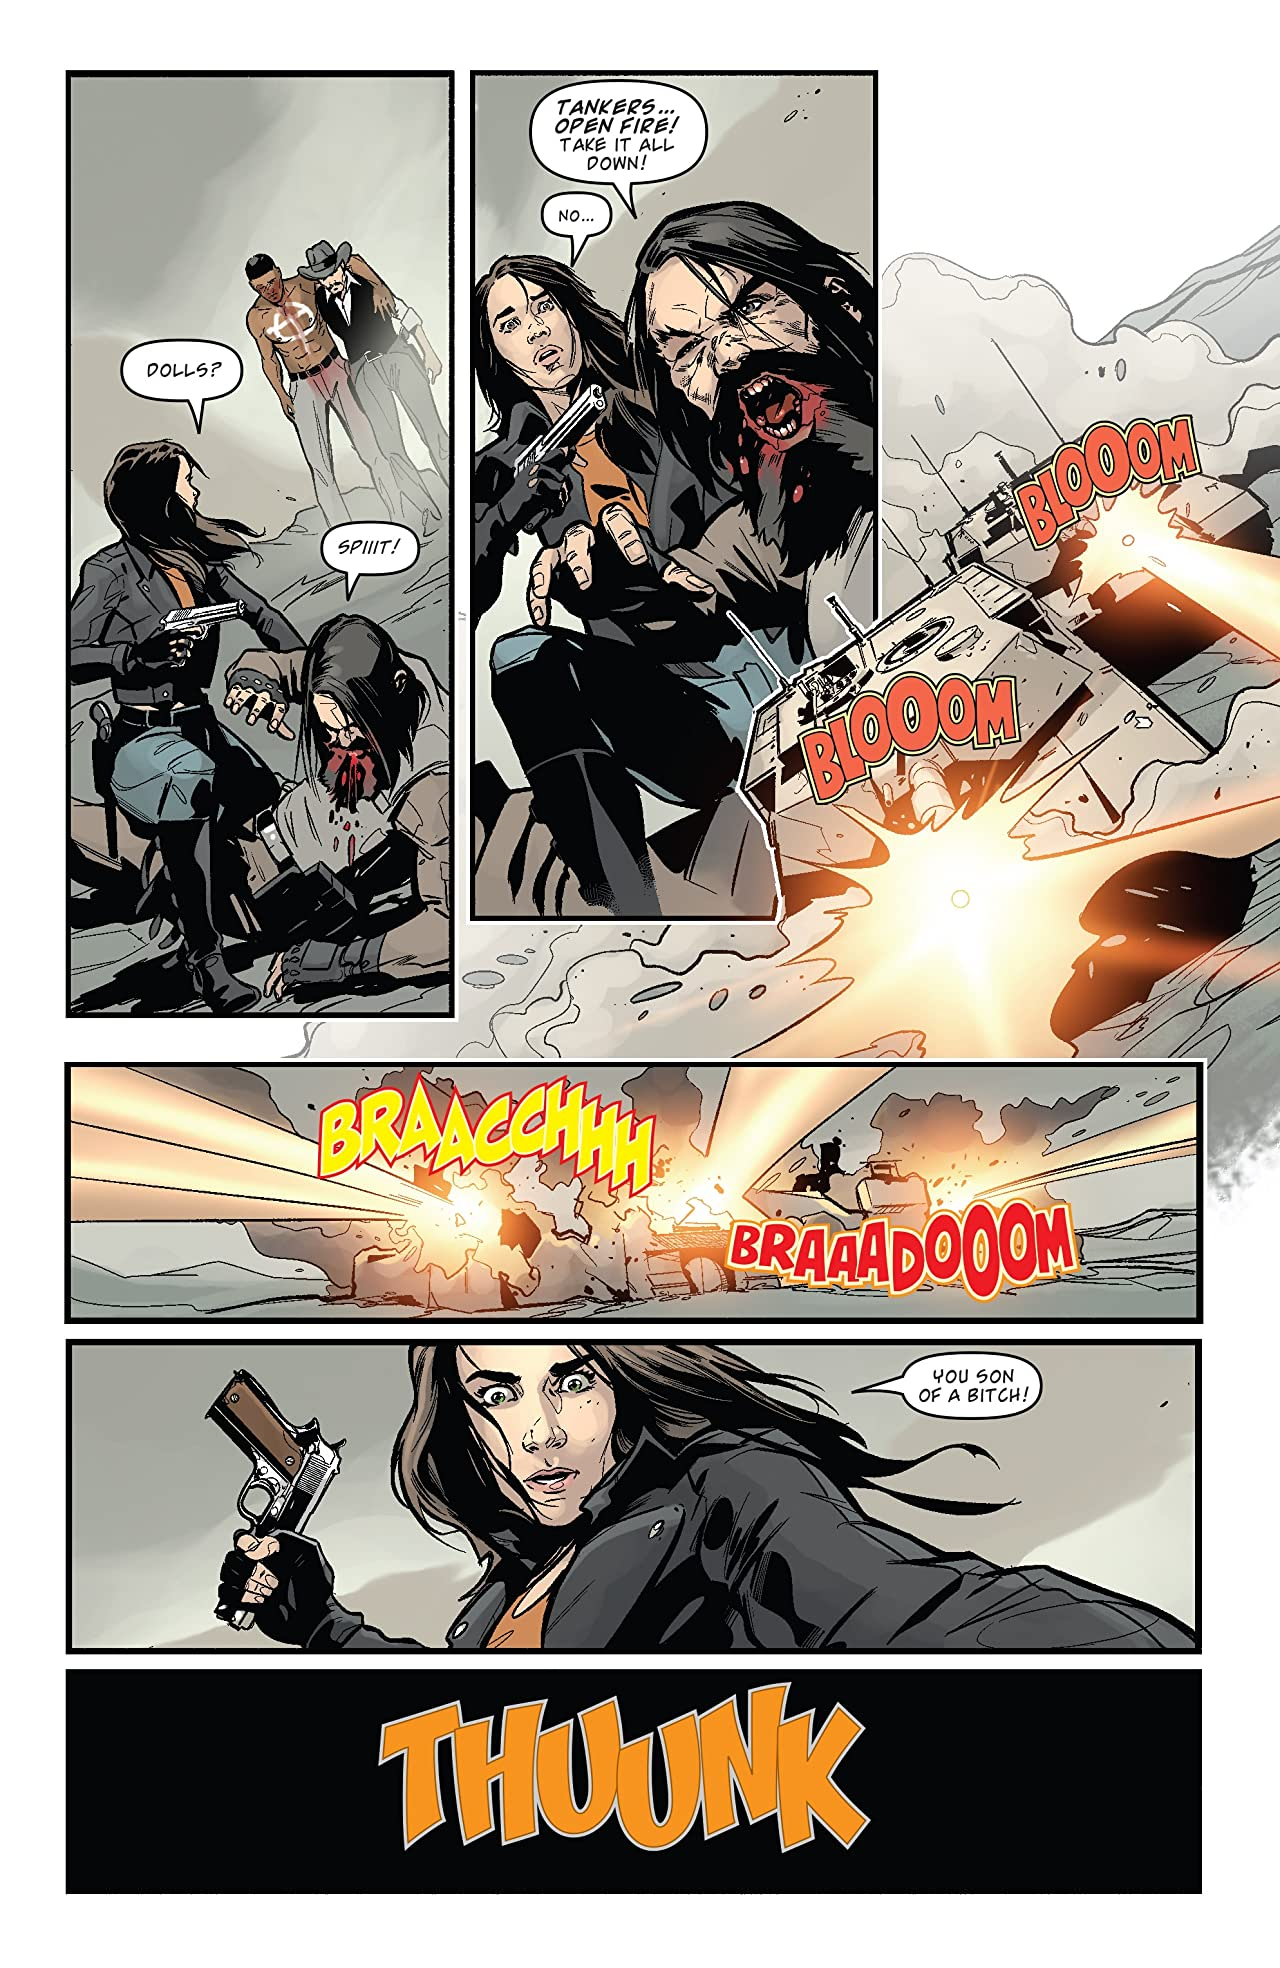 Wynonna Earp: Season Zero #4 (of 5)